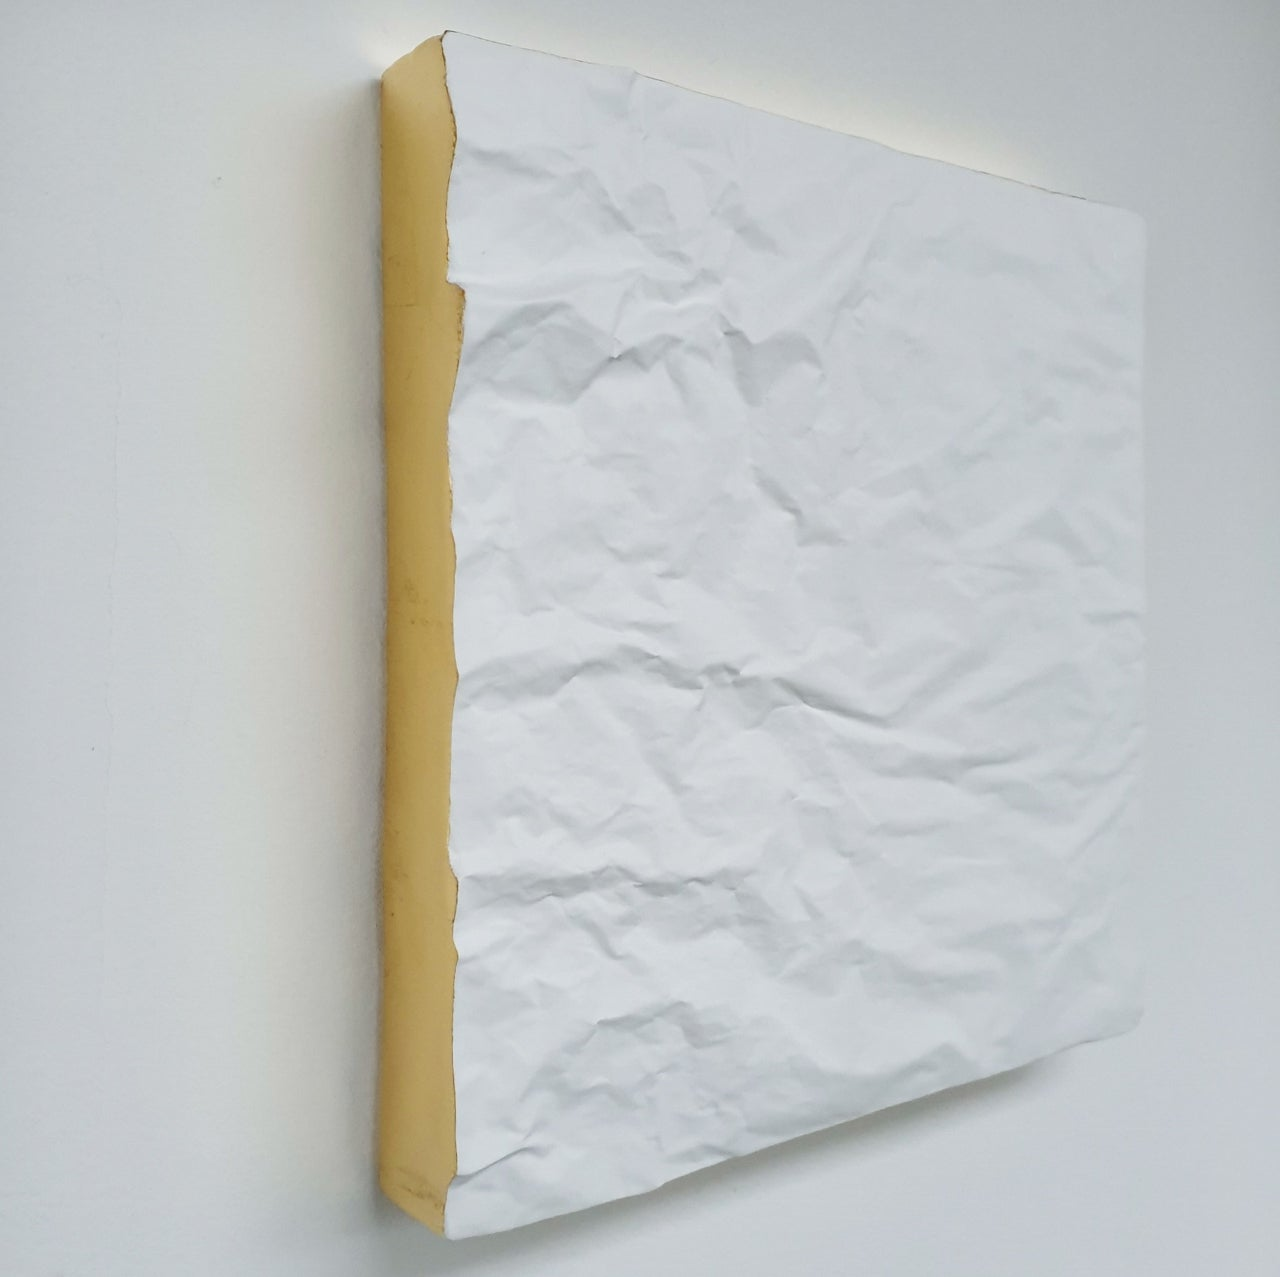 Creased no. 15 - contemporary modern abstract wall sculpture painting object